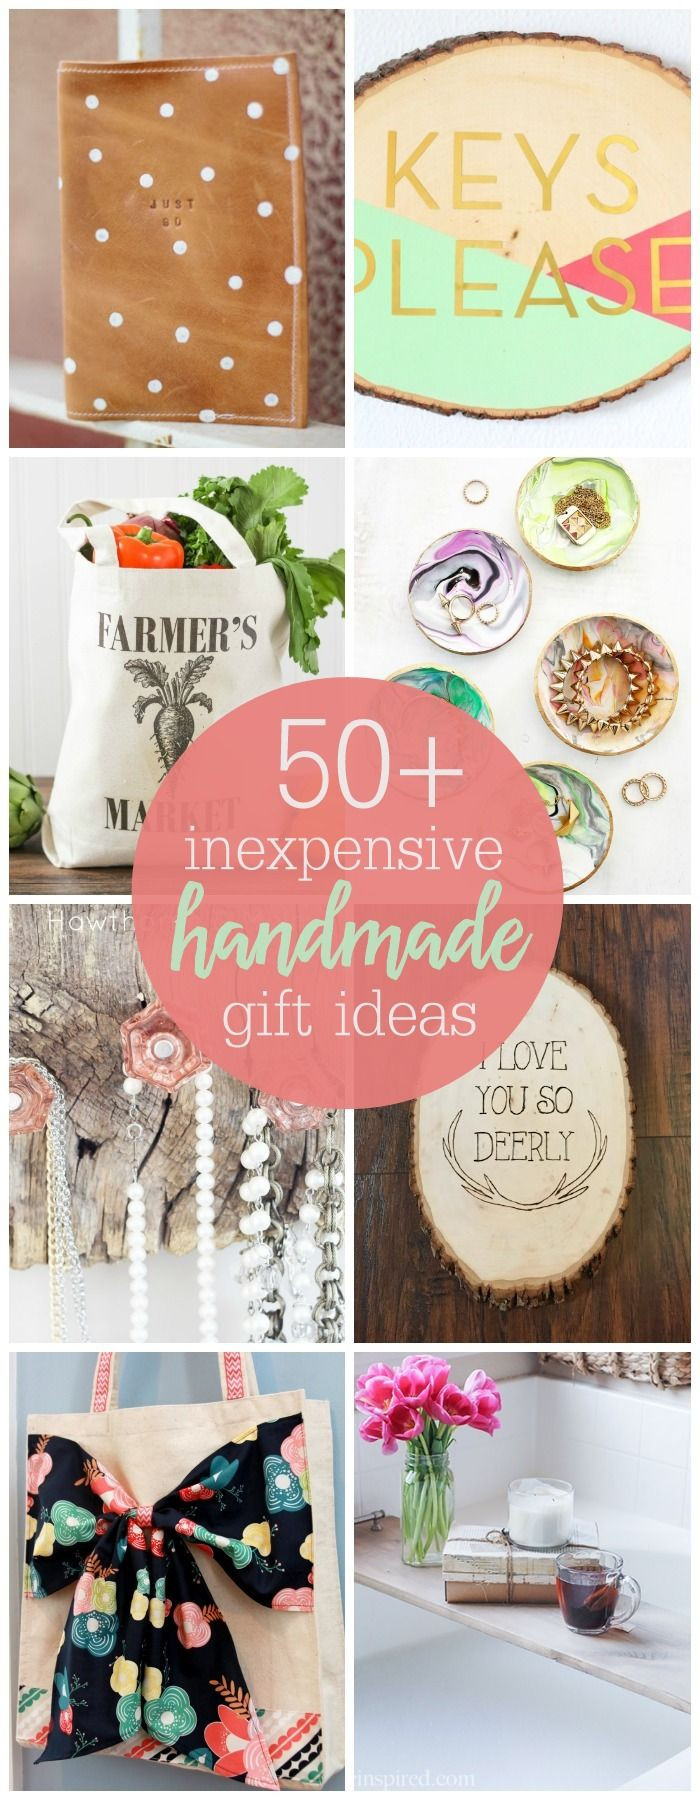 Best ideas about DIY Gift For Family . Save or Pin 1000 ideas about Diy Gifts on Pinterest Now.